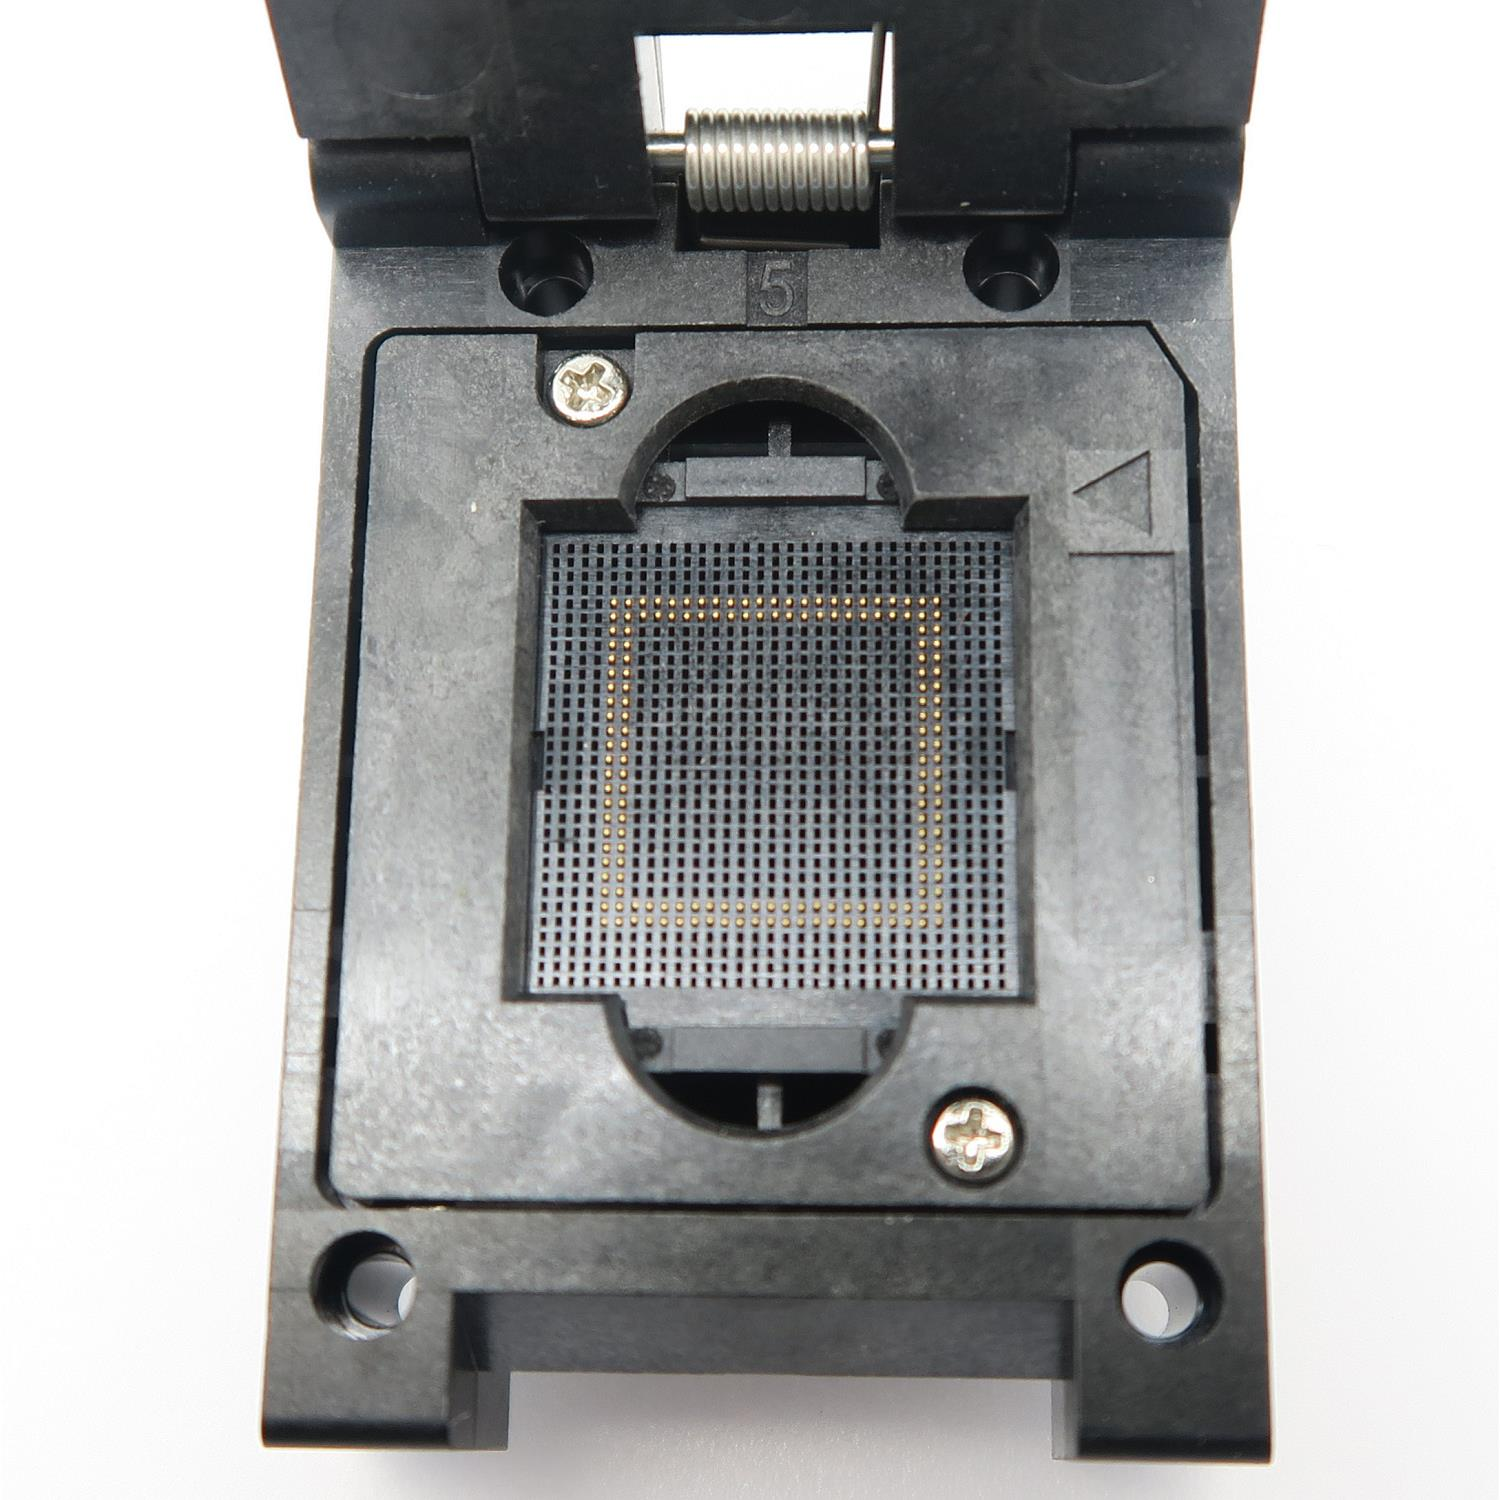 - Socket LPDDR168-0.5-SCL Socket LPDDR168-0.5-SCL Socket High quality IC Test & burn-in socket for / package 3